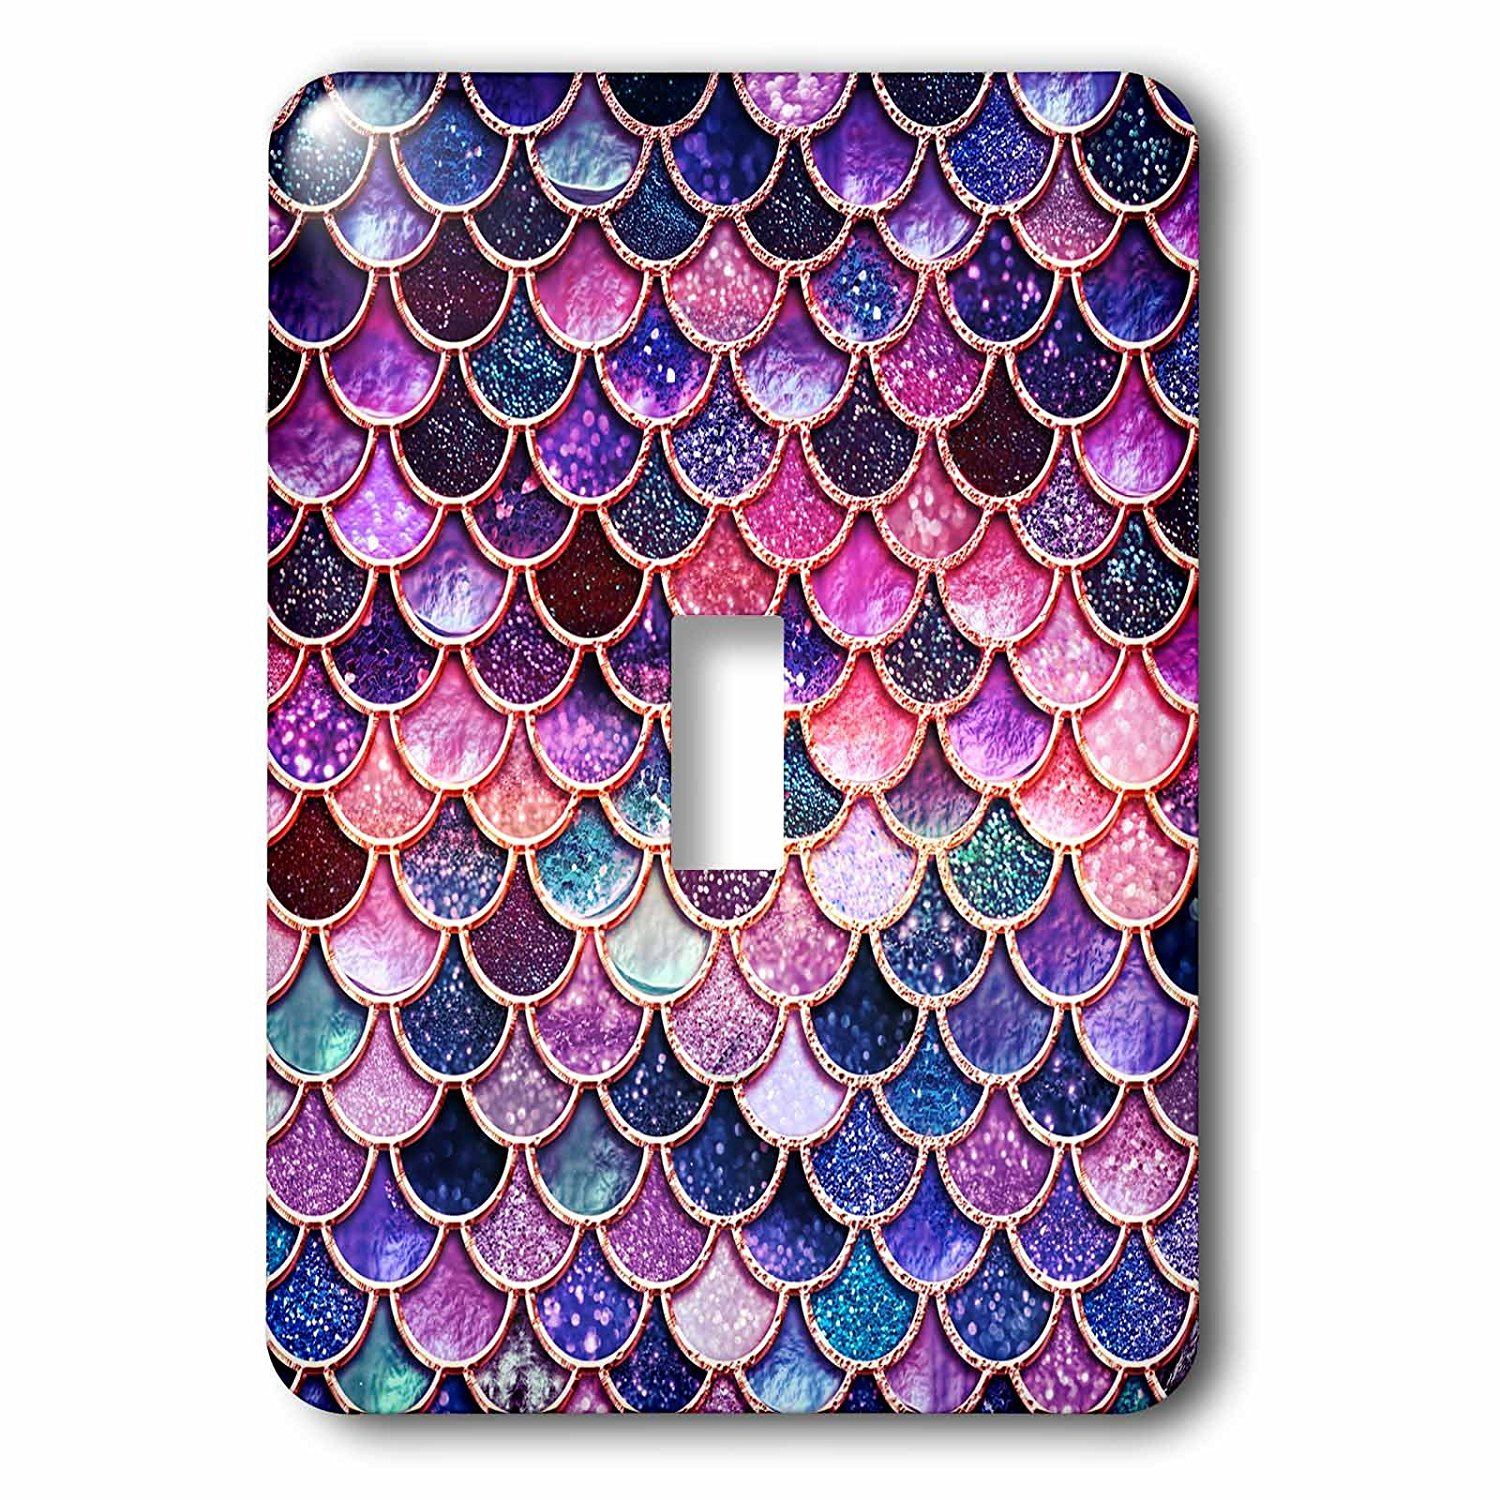 3dRose Uta Naumann Faux Glitter Pattern - Multicolor Girly Trend Pink Luxury Elegant Mermaid Scales Glitter - Light Switch Covers - single toggle switch (lsp_272859_1)